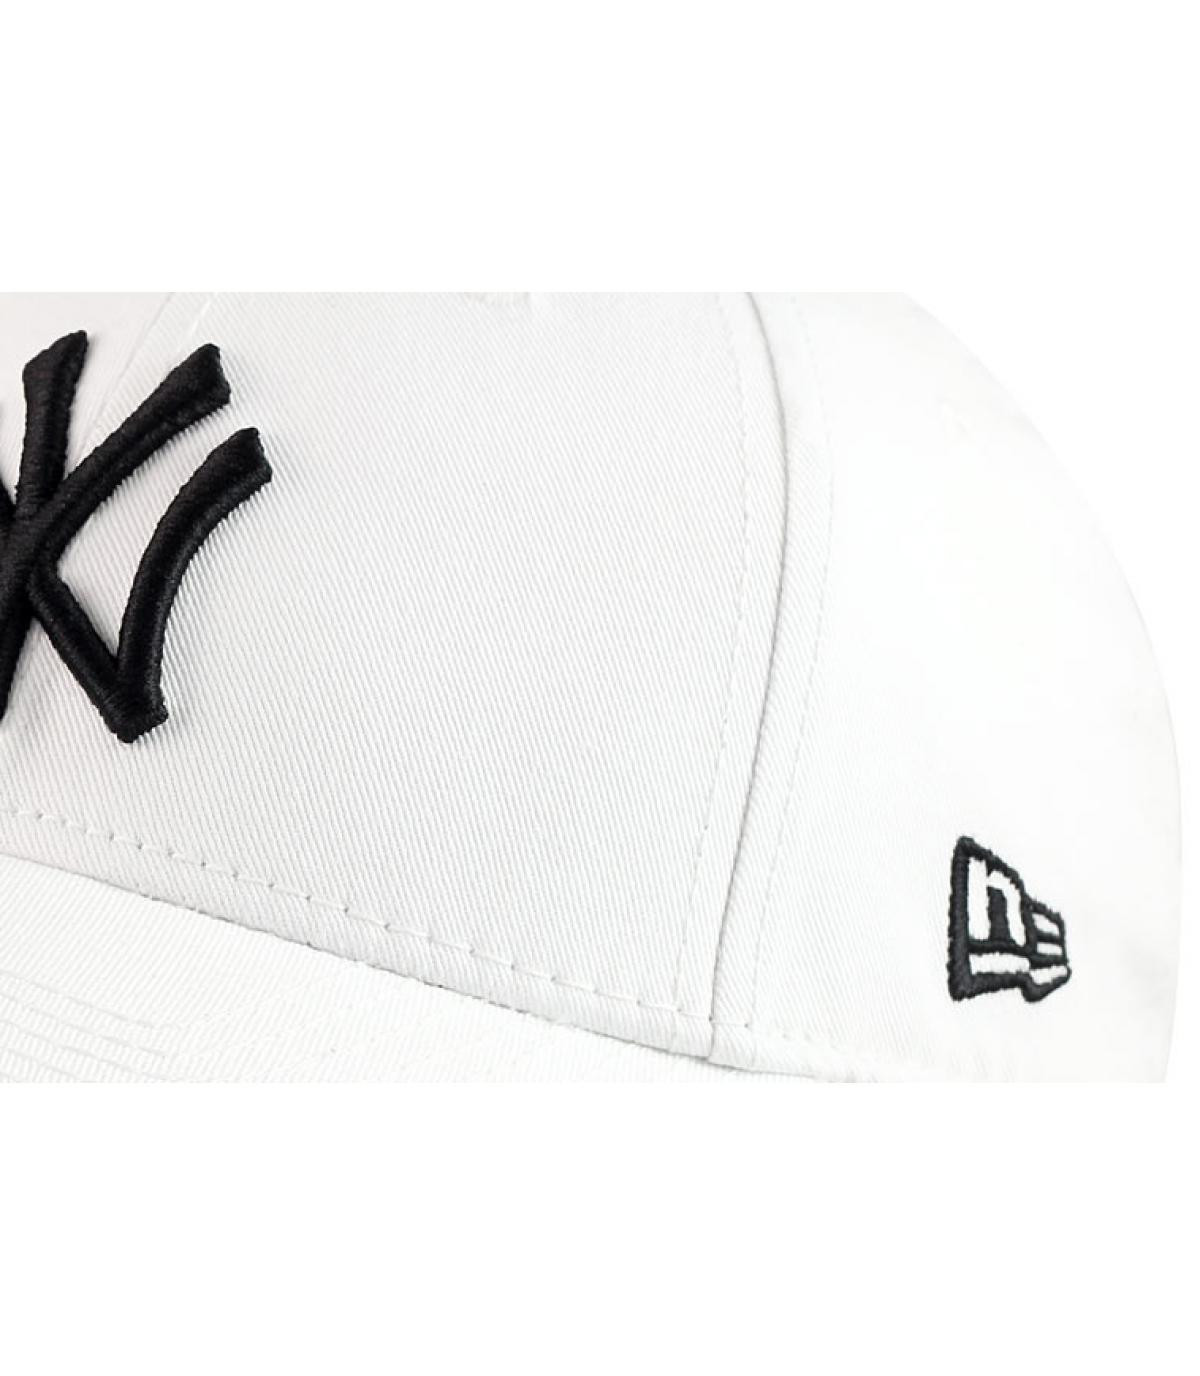 Détails White trucker NY fitted - image 2